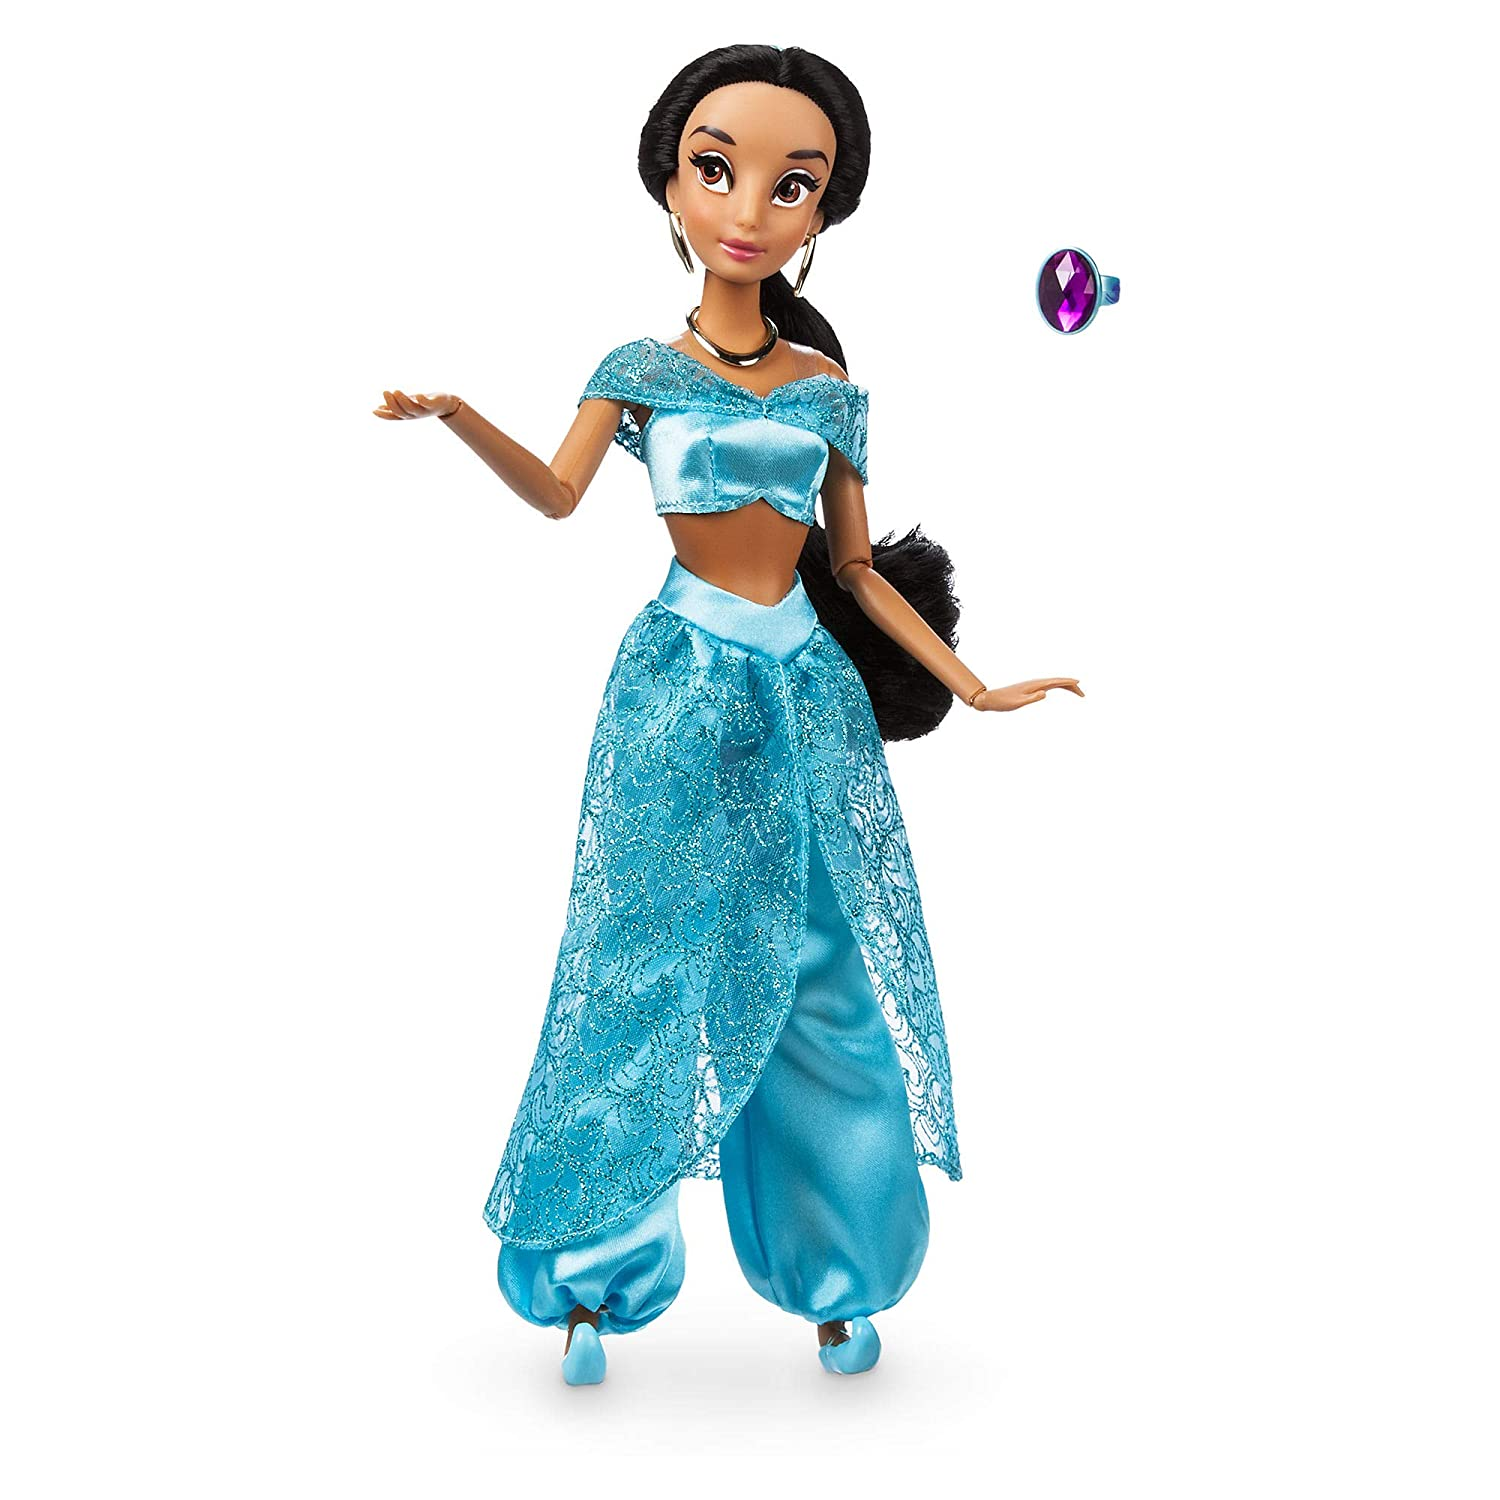 Disney Official Store Aladdin Princess Jasmine Classic Doll With Ring 30cm Tall